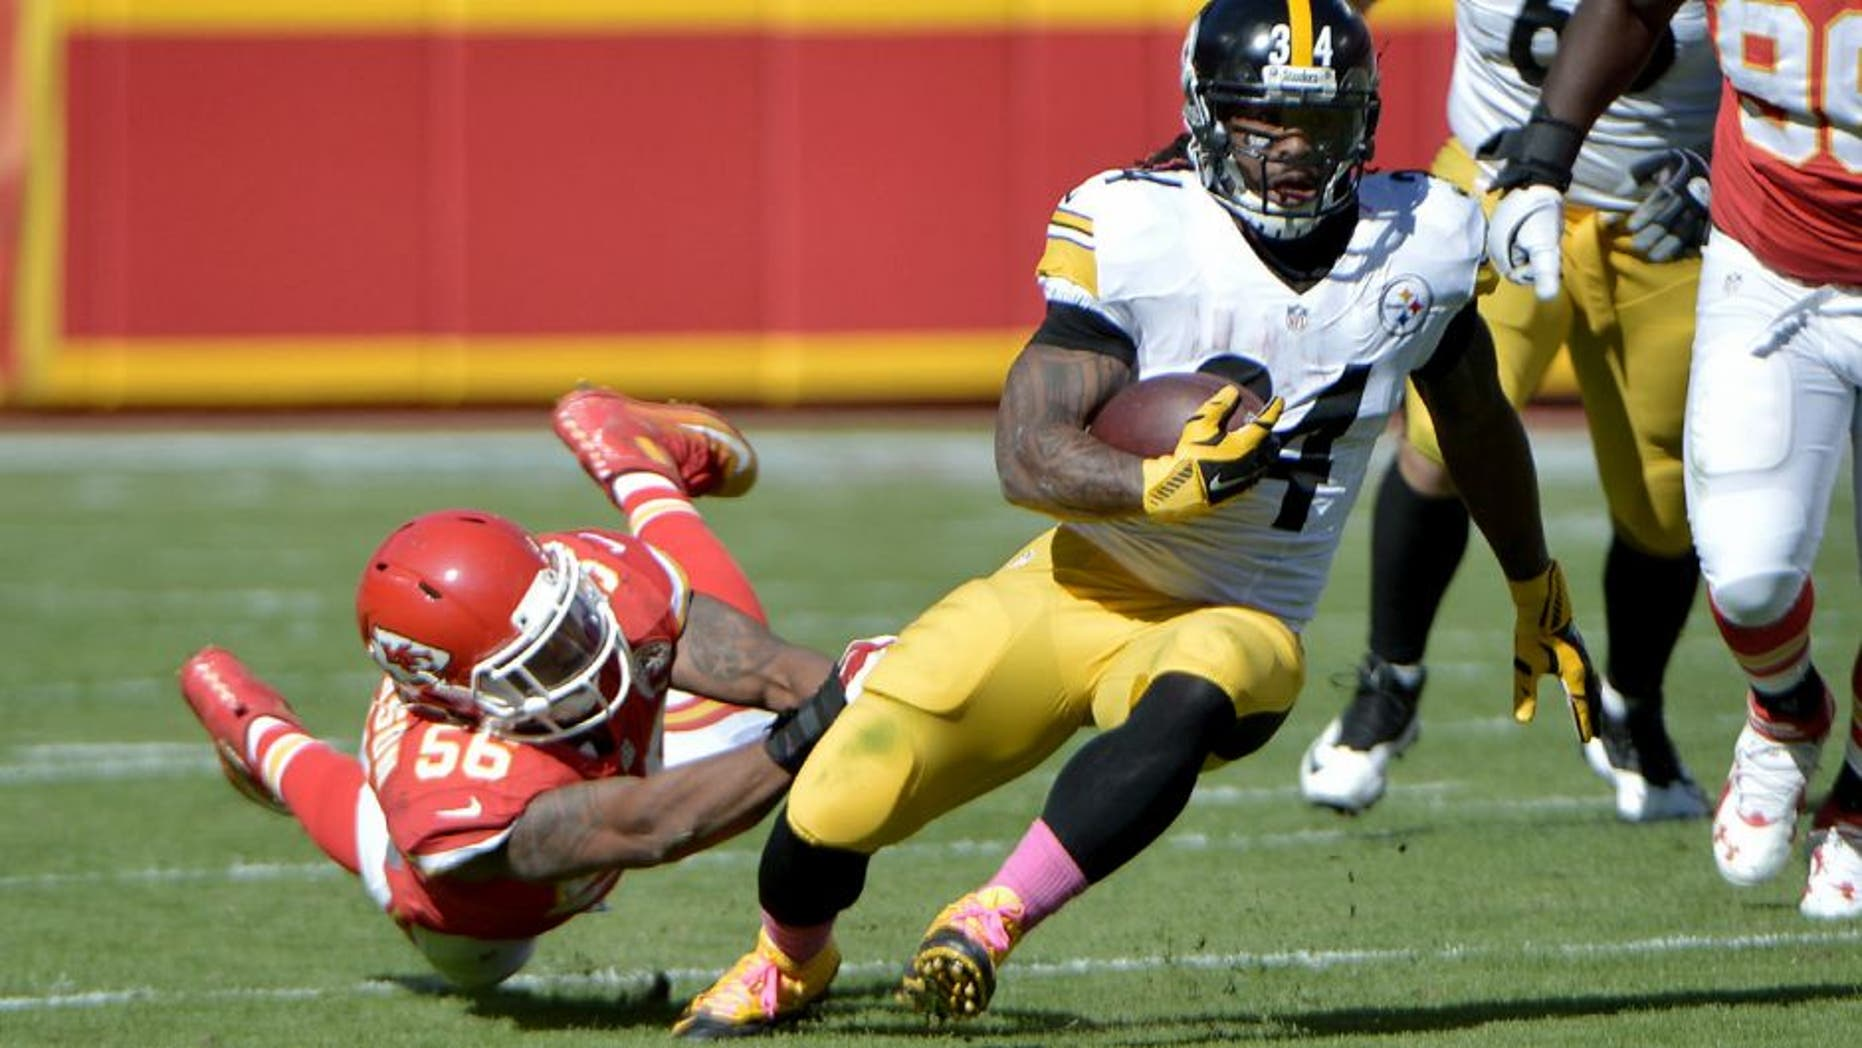 Oct 25, 2015; Kansas City, MO, USA; Pittsburgh Steelers inside linebacker Lawrence Timmons (94) runs the ball as Kansas City Chiefs inside linebacker Derrick Johnson (56) defends during the second half at Arrowhead Stadium. The Chiefs won 23-13. Mandatory Credit: Denny Medley-USA TODAY Sports